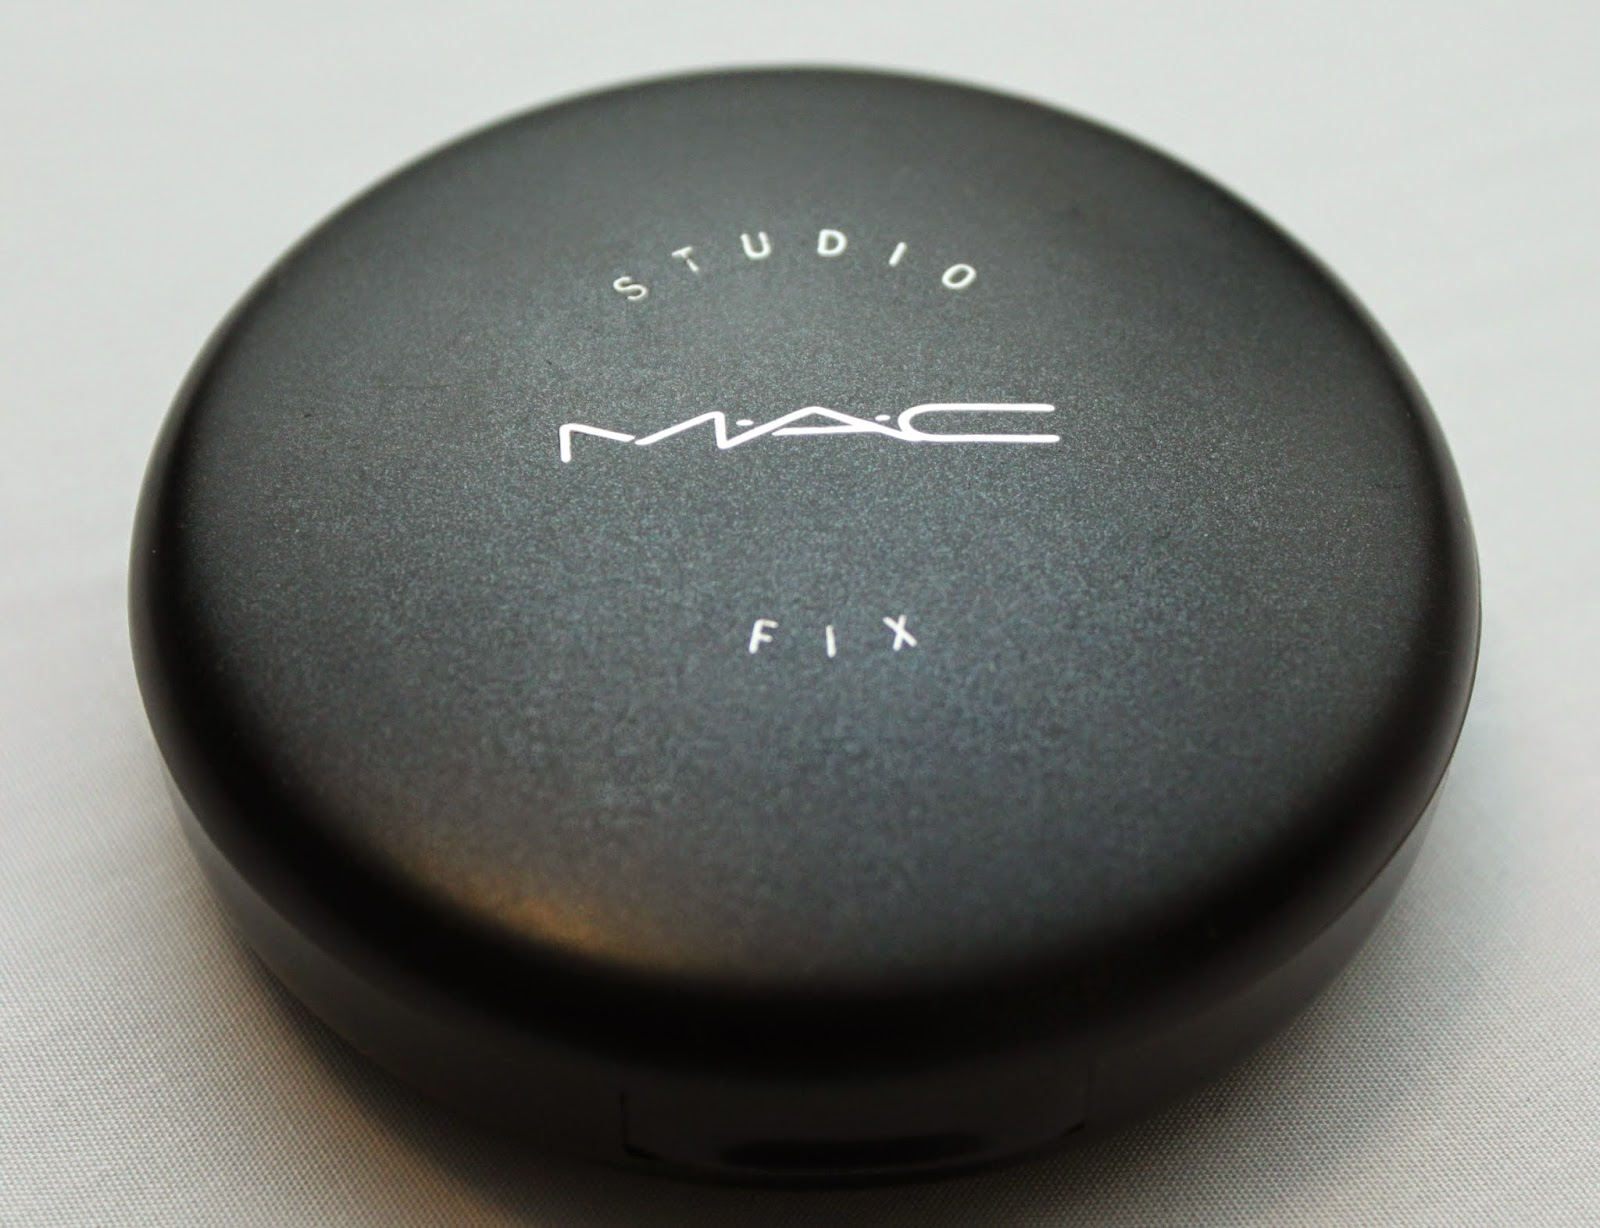 M.A.C STUDIO FIX IN NW40